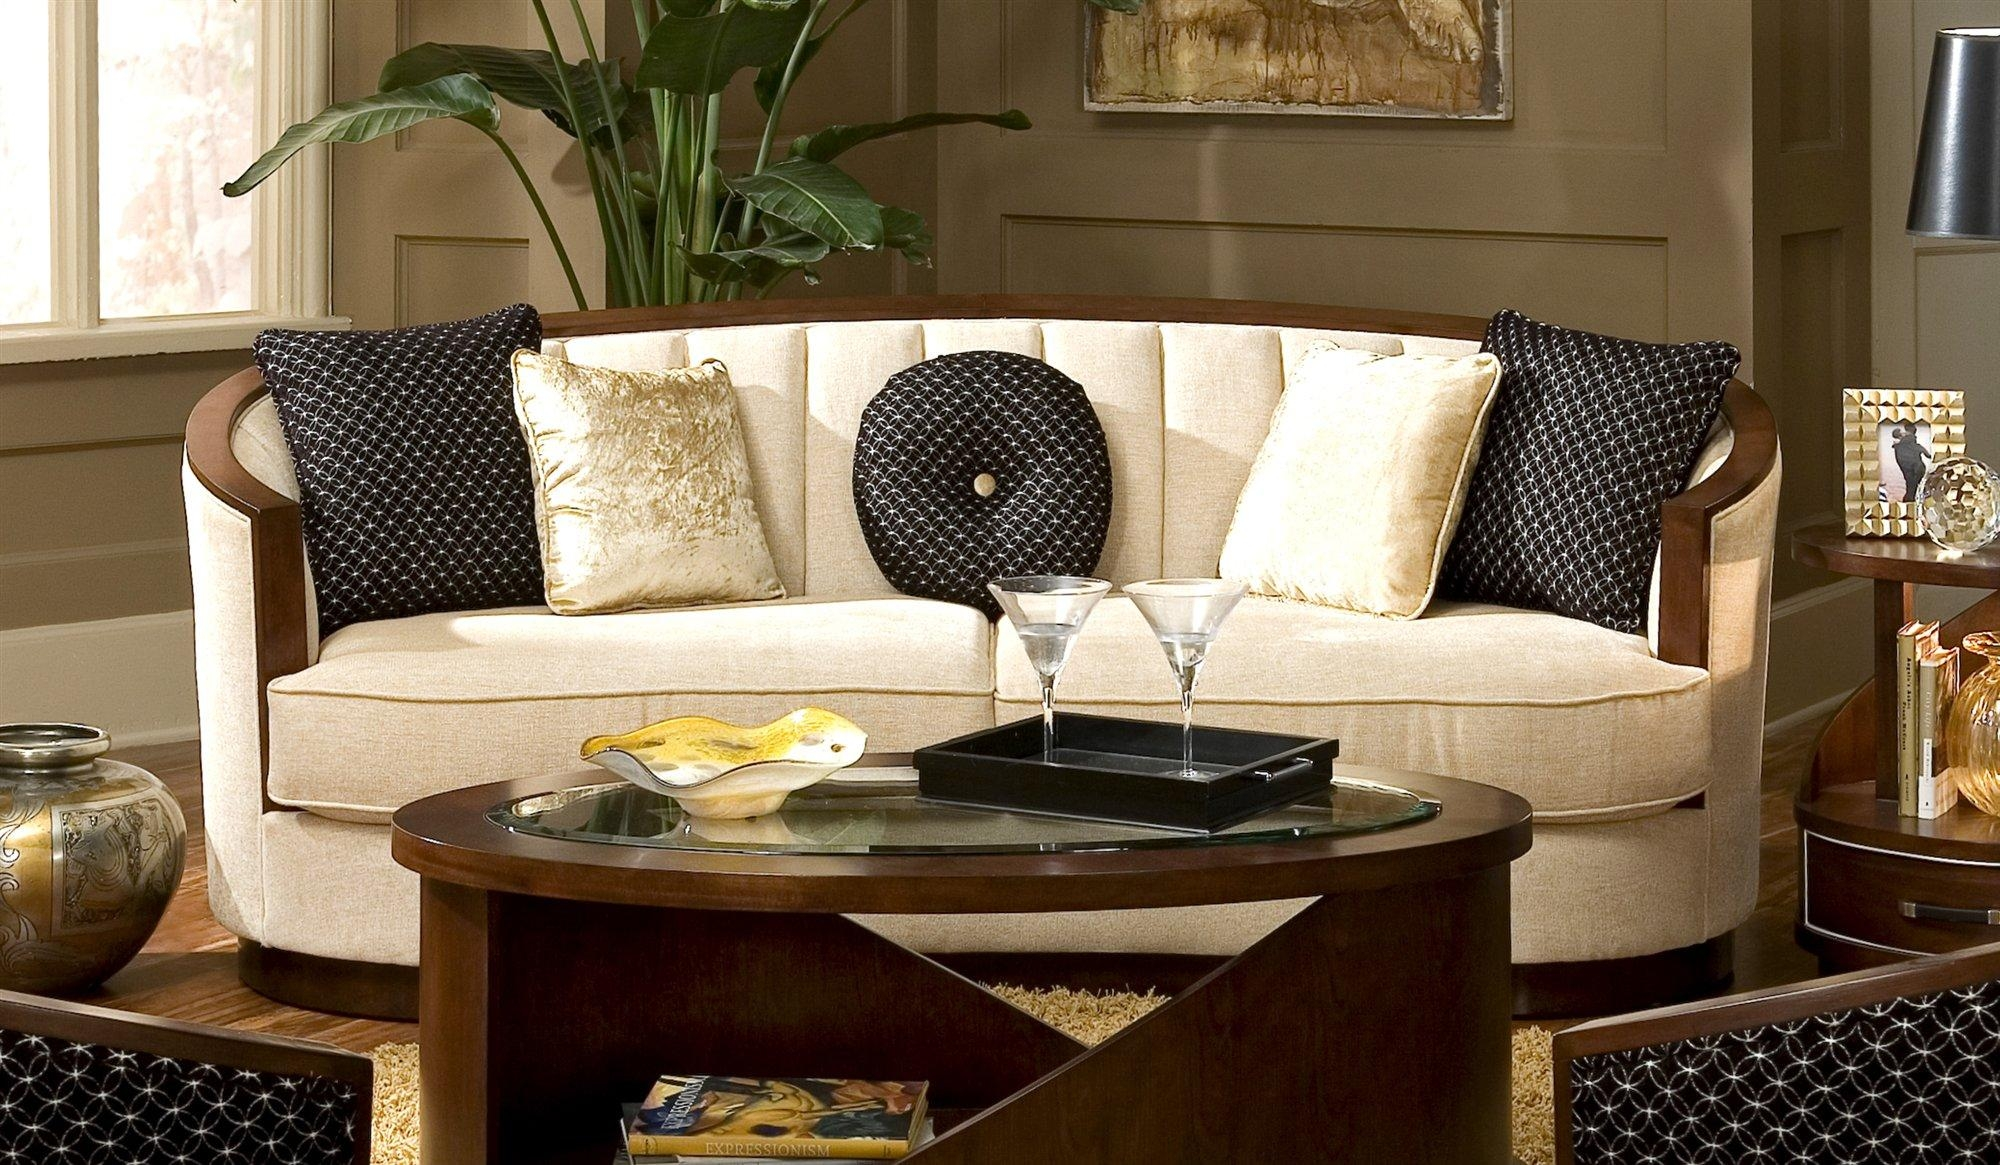 Fabulous Oval Sectional Sofas With Appealing Design – Ajara Decor Intended For Oval Sofas (Image 5 of 21)